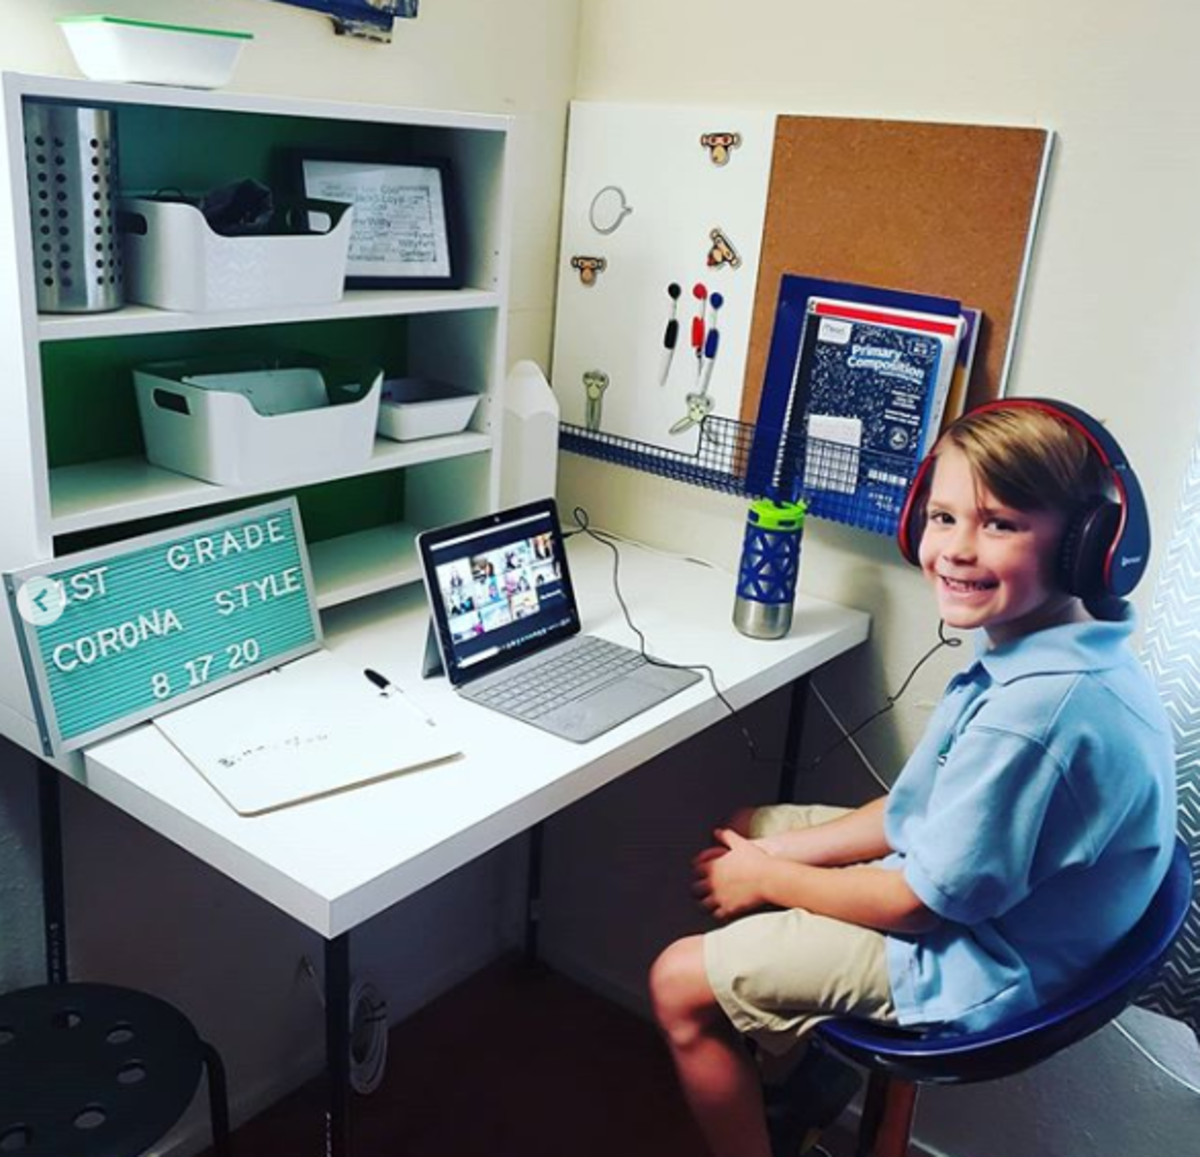 My nephew's home learning space, which includes a cork board, a white board, a letter board, and some storage bins.